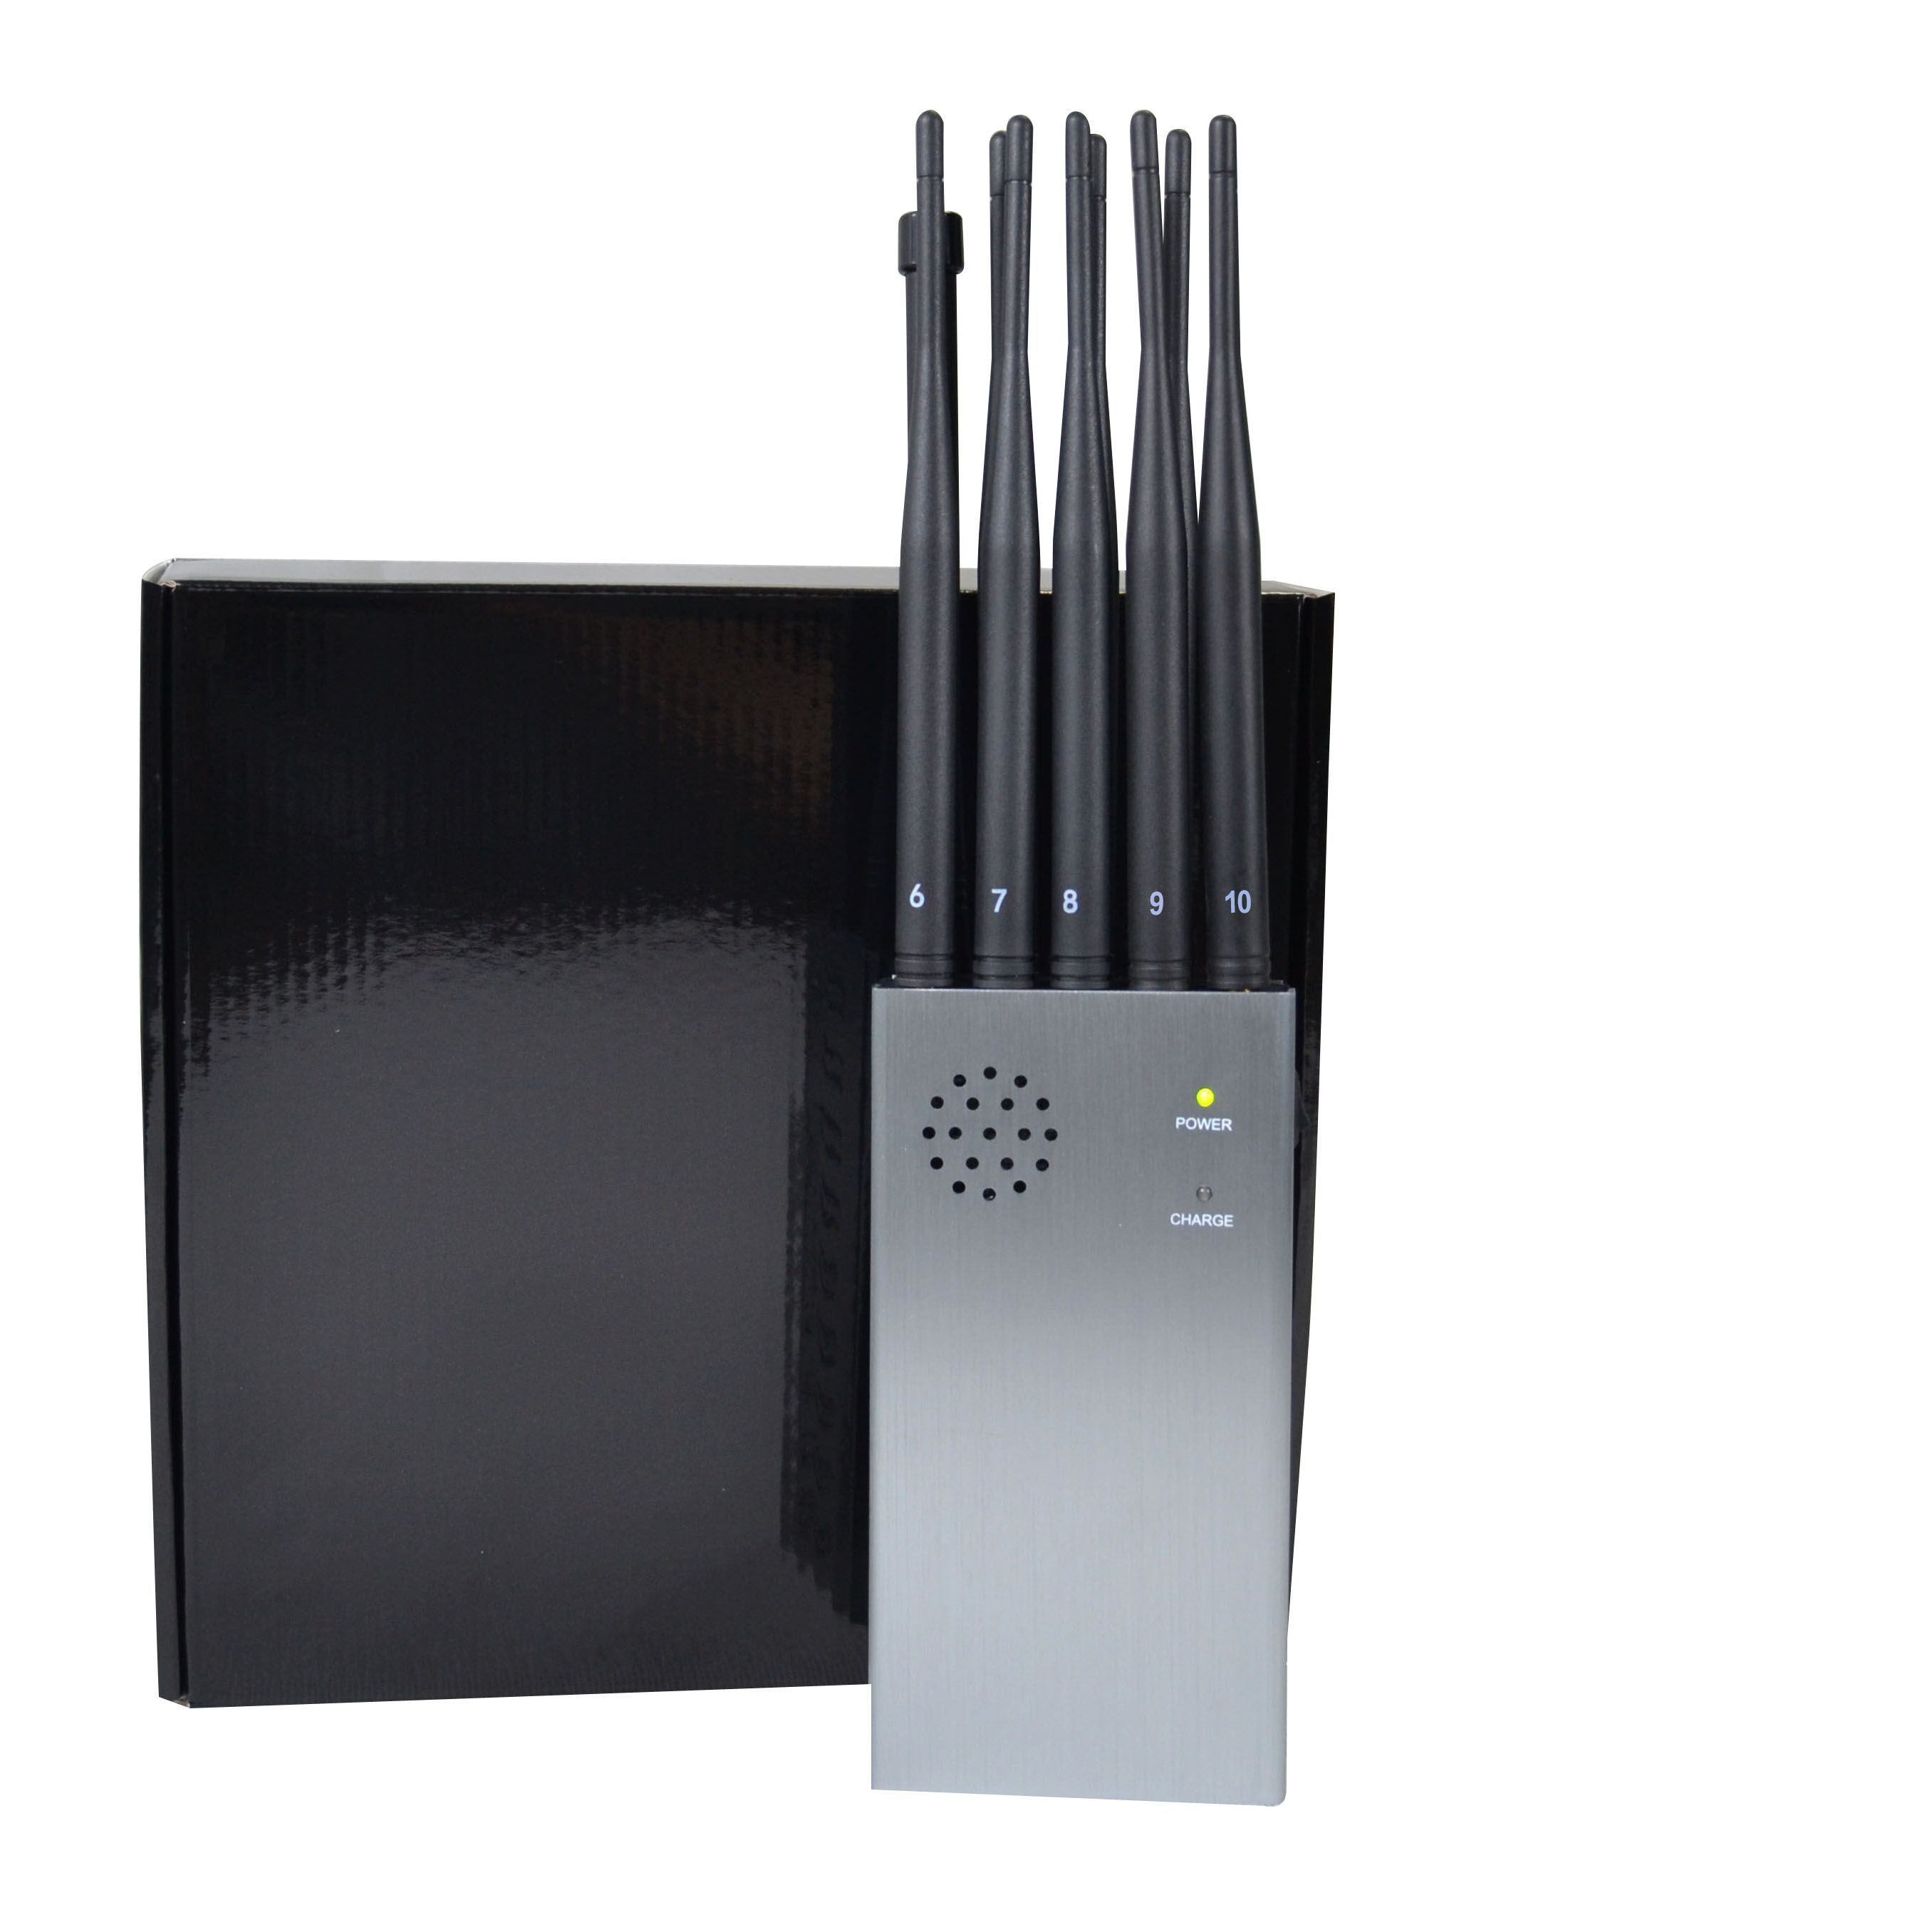 Signal scrambler wireless iphone - China King Jammer with Portable 10 Antennas Including 2g 3G 5g 4G WiFi, GPS Remote Control Lojack Signals - China 8000mA Battery Jammer, Large Volume Power Signal Blocker